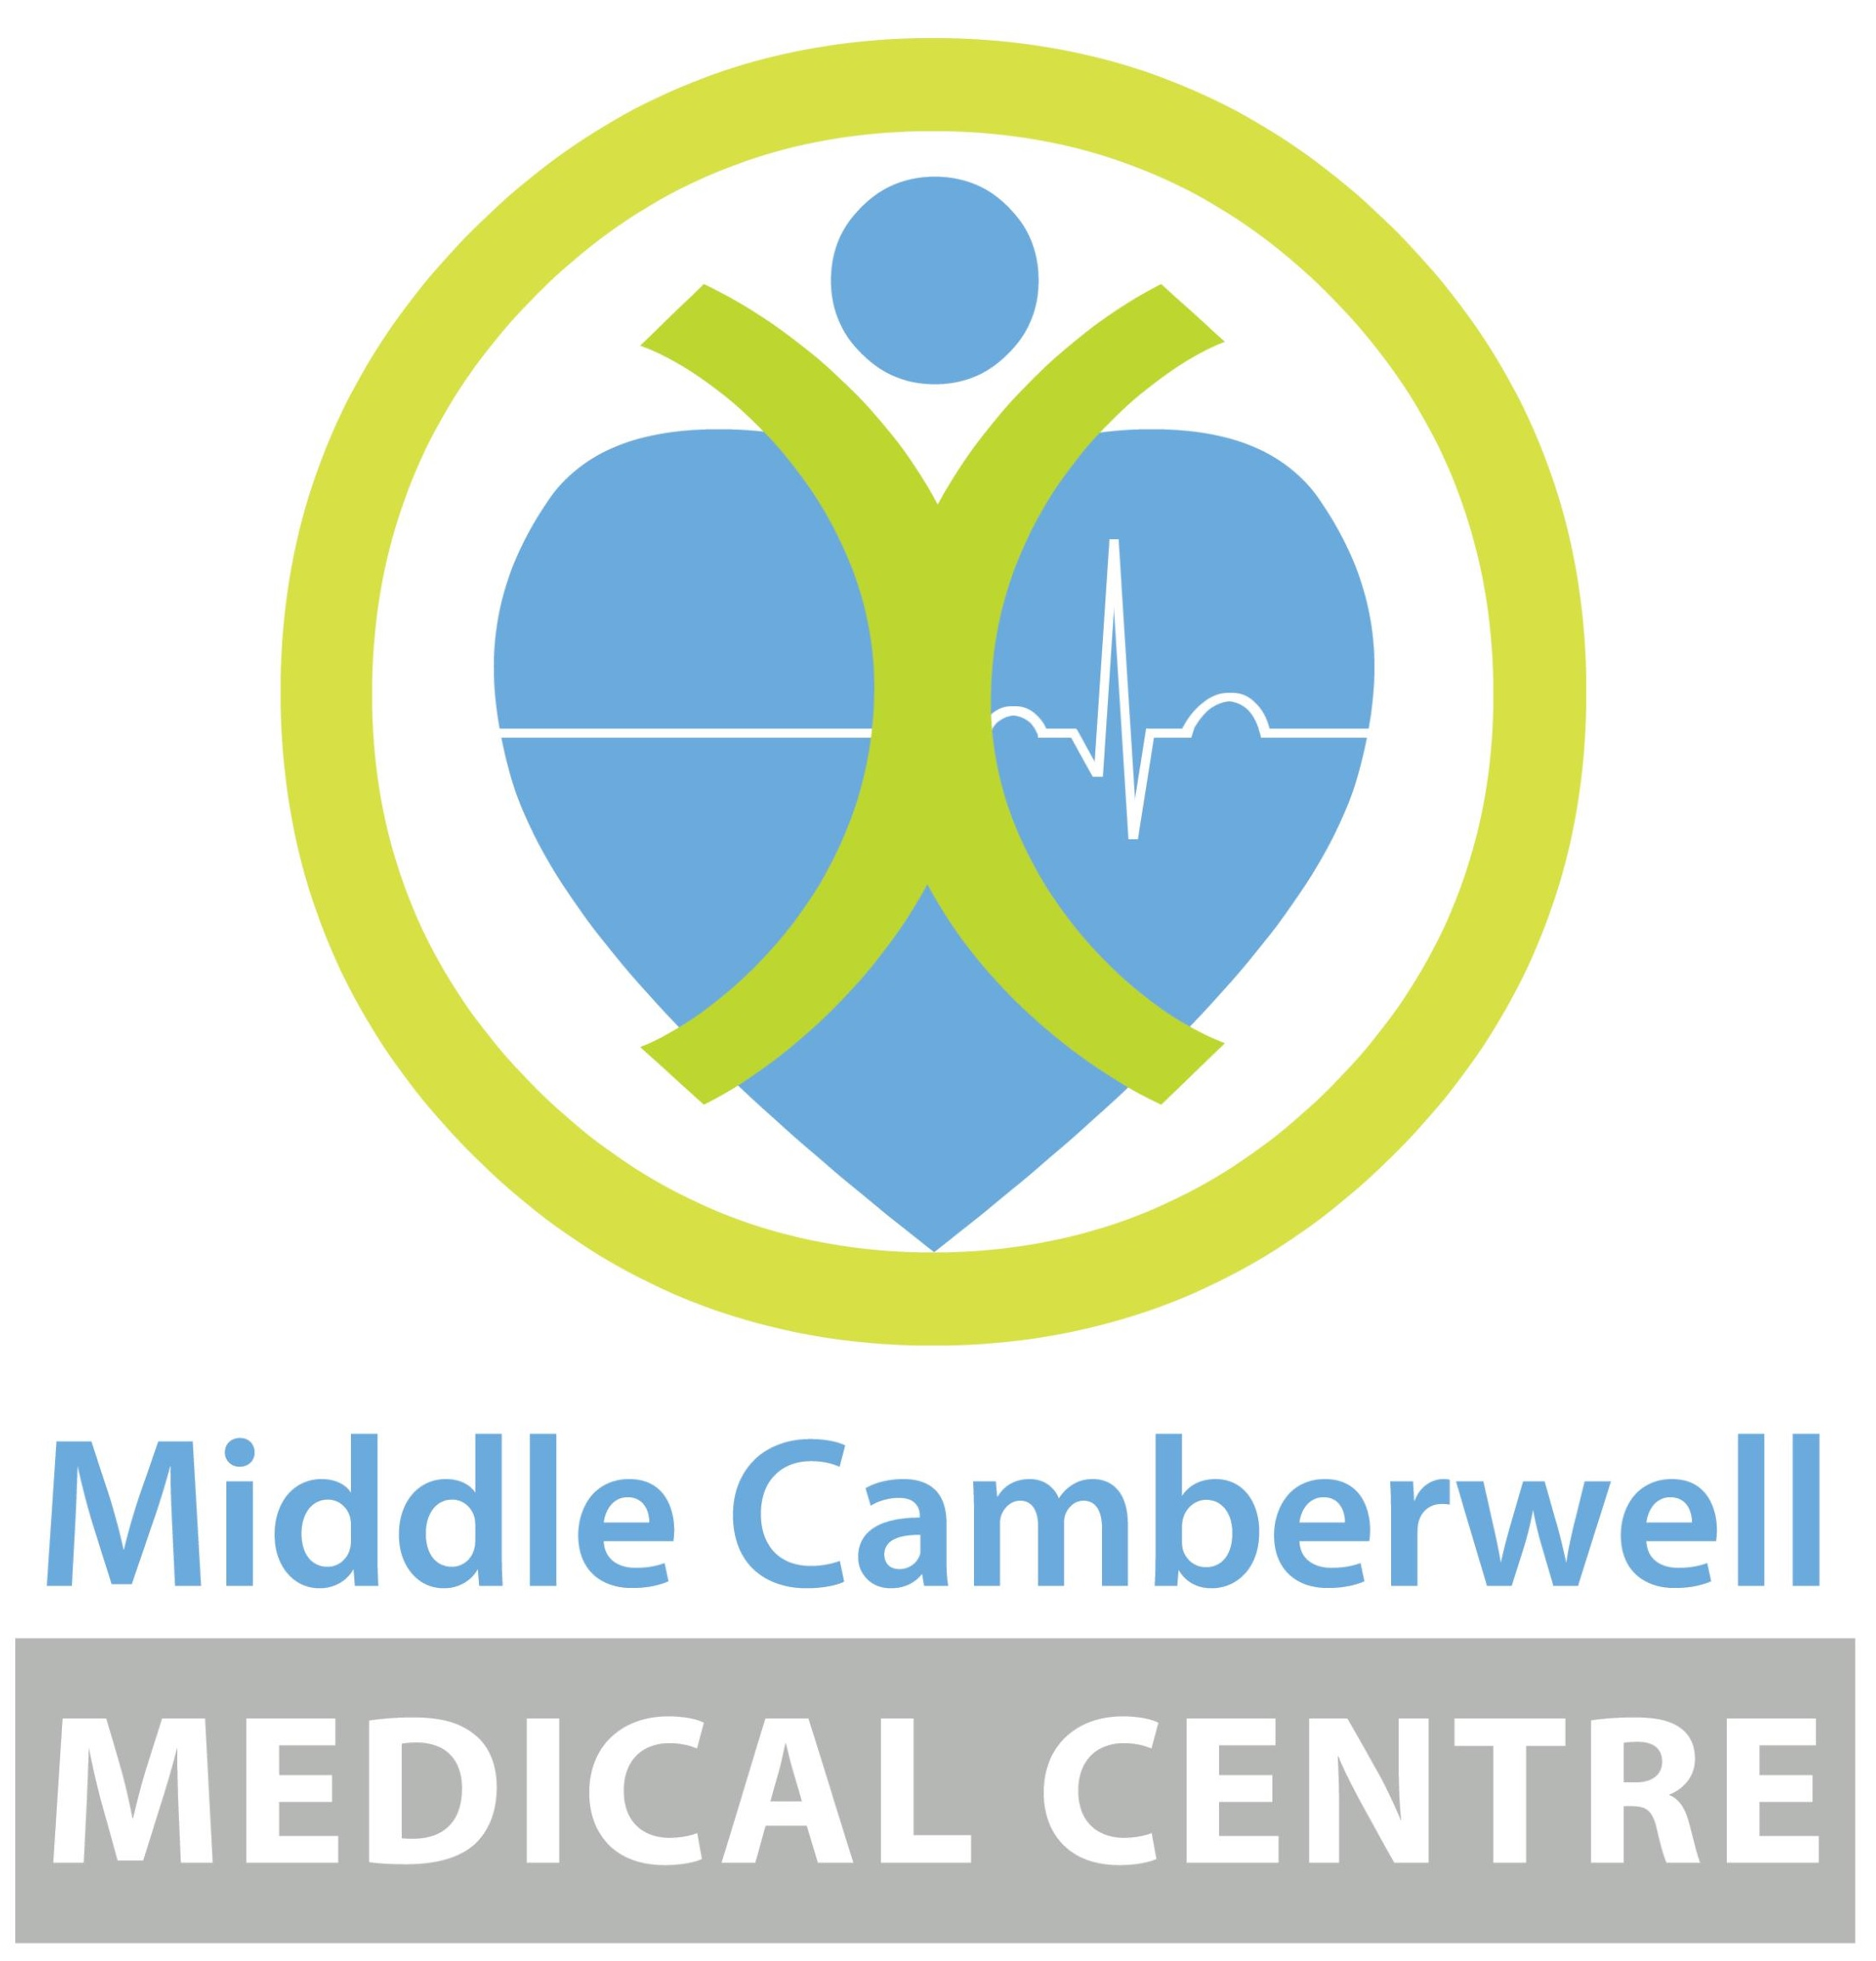 Middle Camberwell Medical Centre Logo